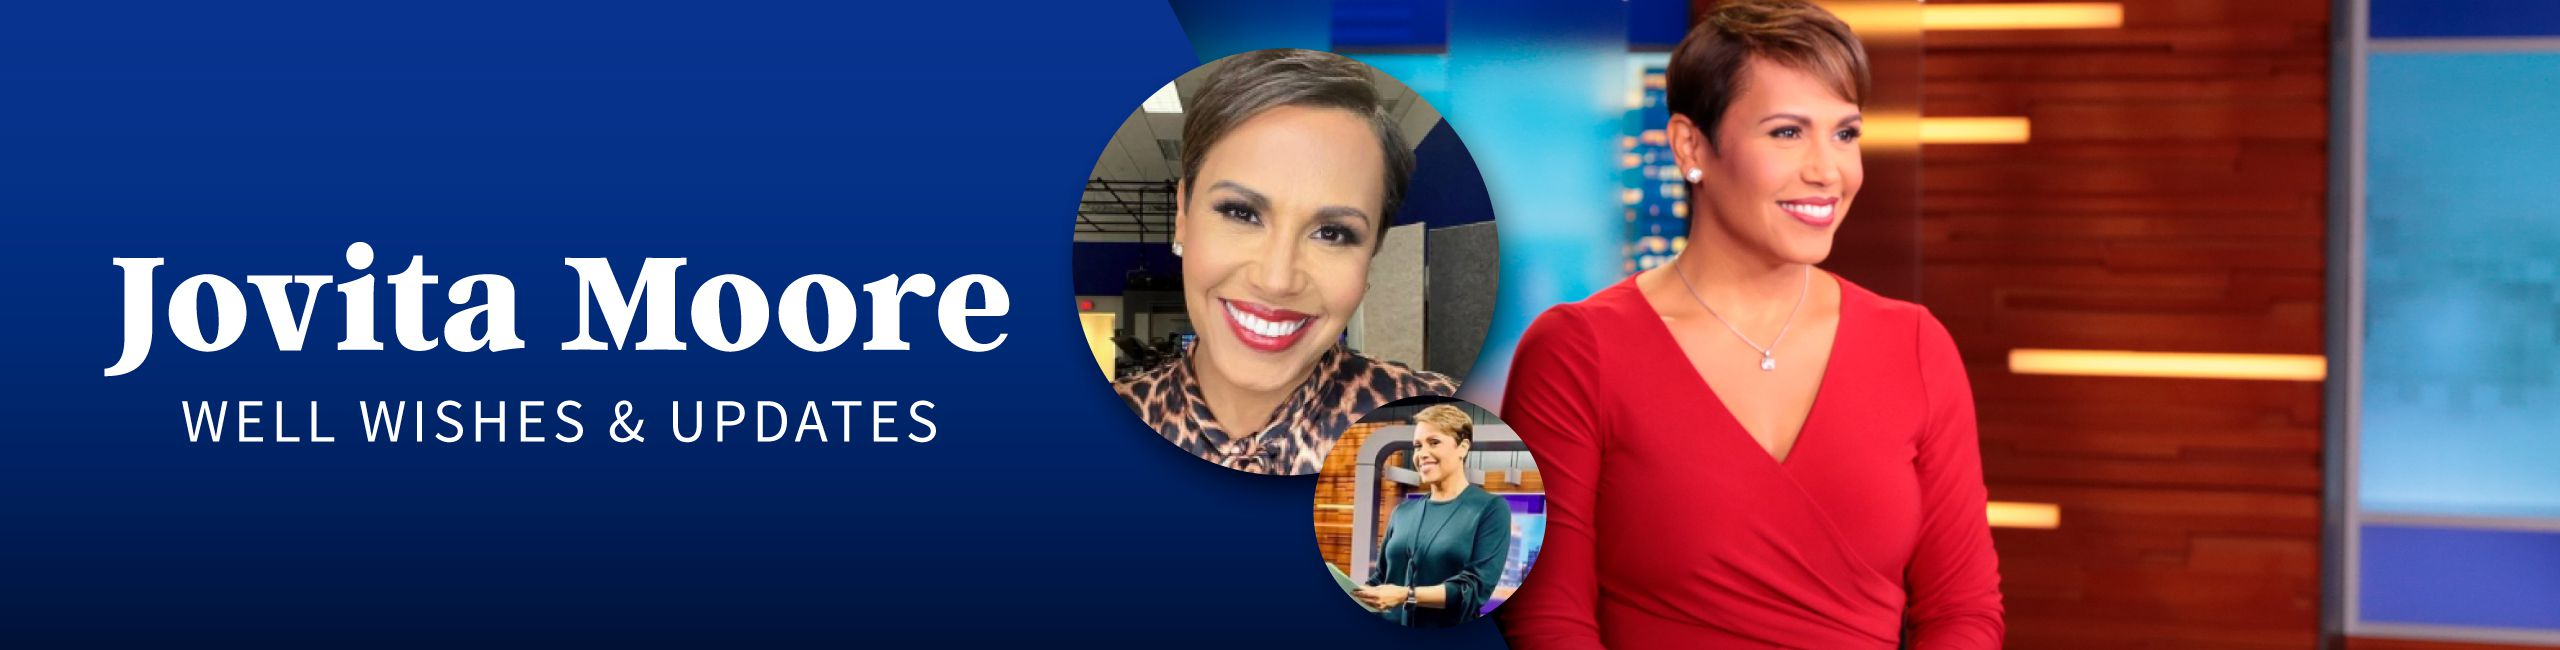 Jovita Moore Well Wishes & Updates